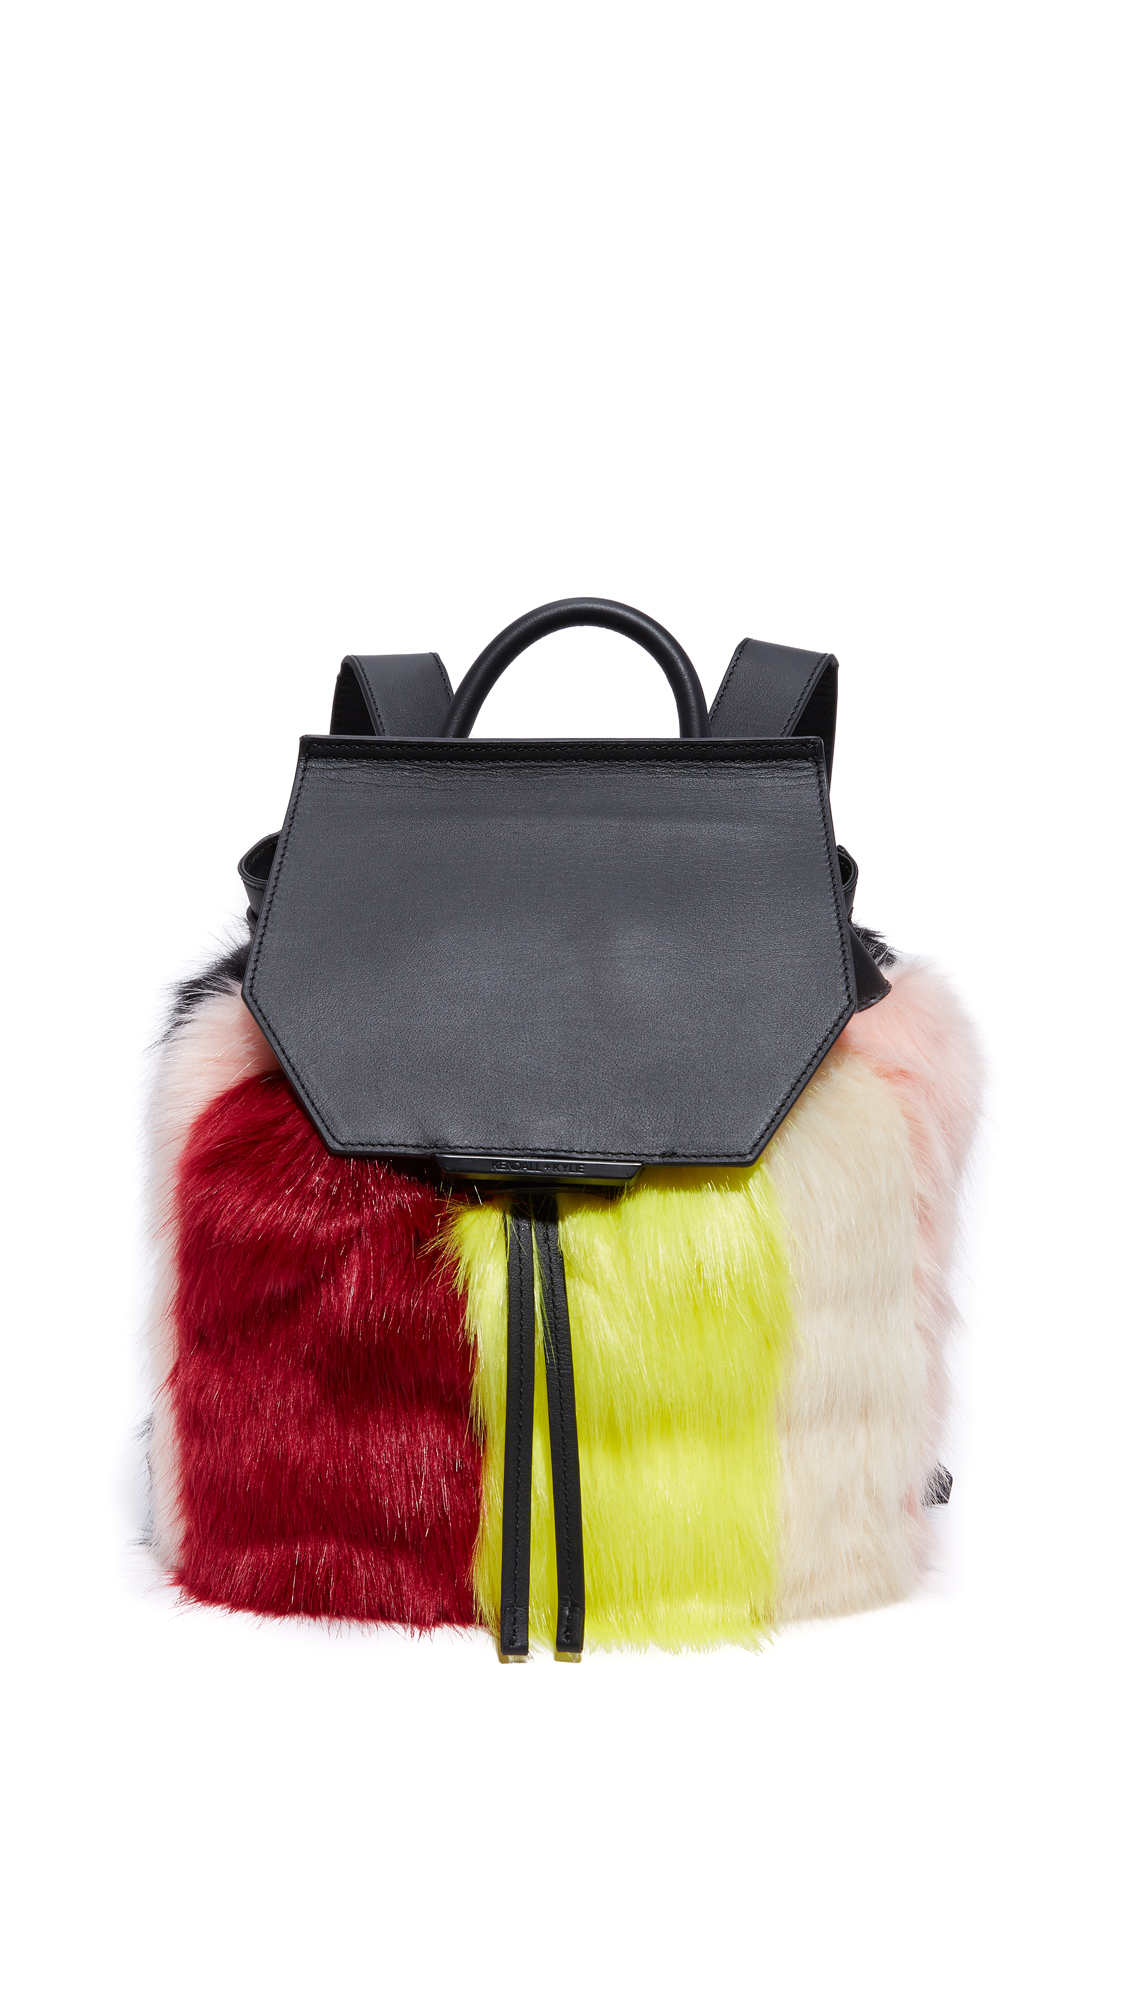 Colorful patches of faux fur cover this smooth leather KENDALL + KYLIE backpack. The push lock top flap covers a drawstring closure. Lined interior with 1 pocket. Locker loop and adjustable shoulder straps. Dust bag included. Leather: Cowhide.